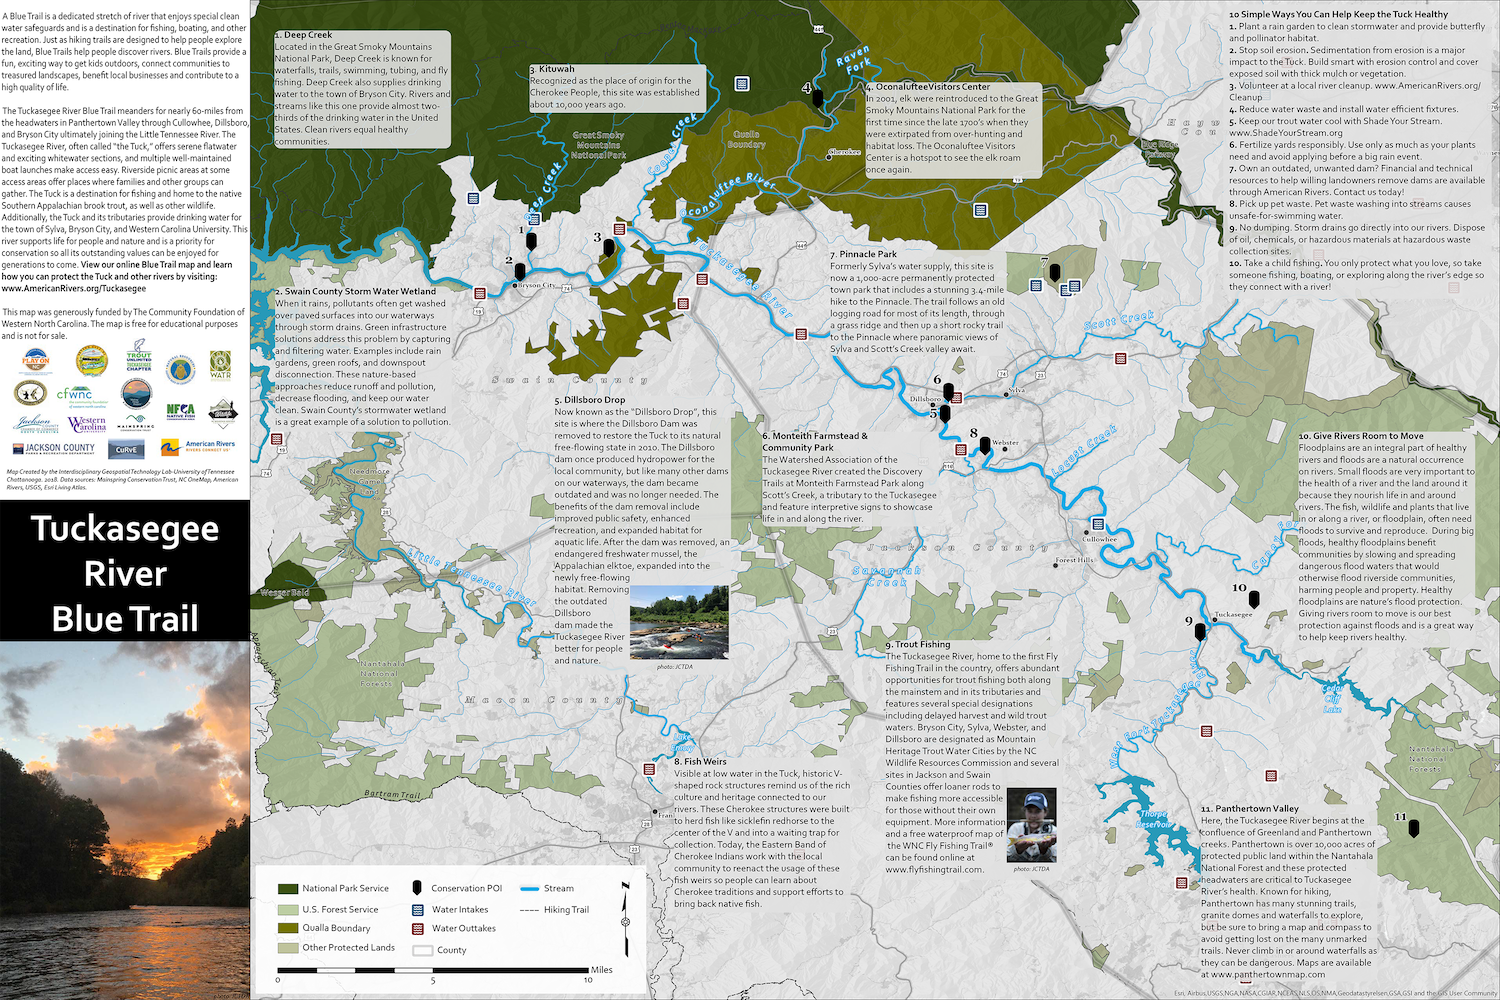 Tuckasegee River Blue Trail Map Released American Rivers